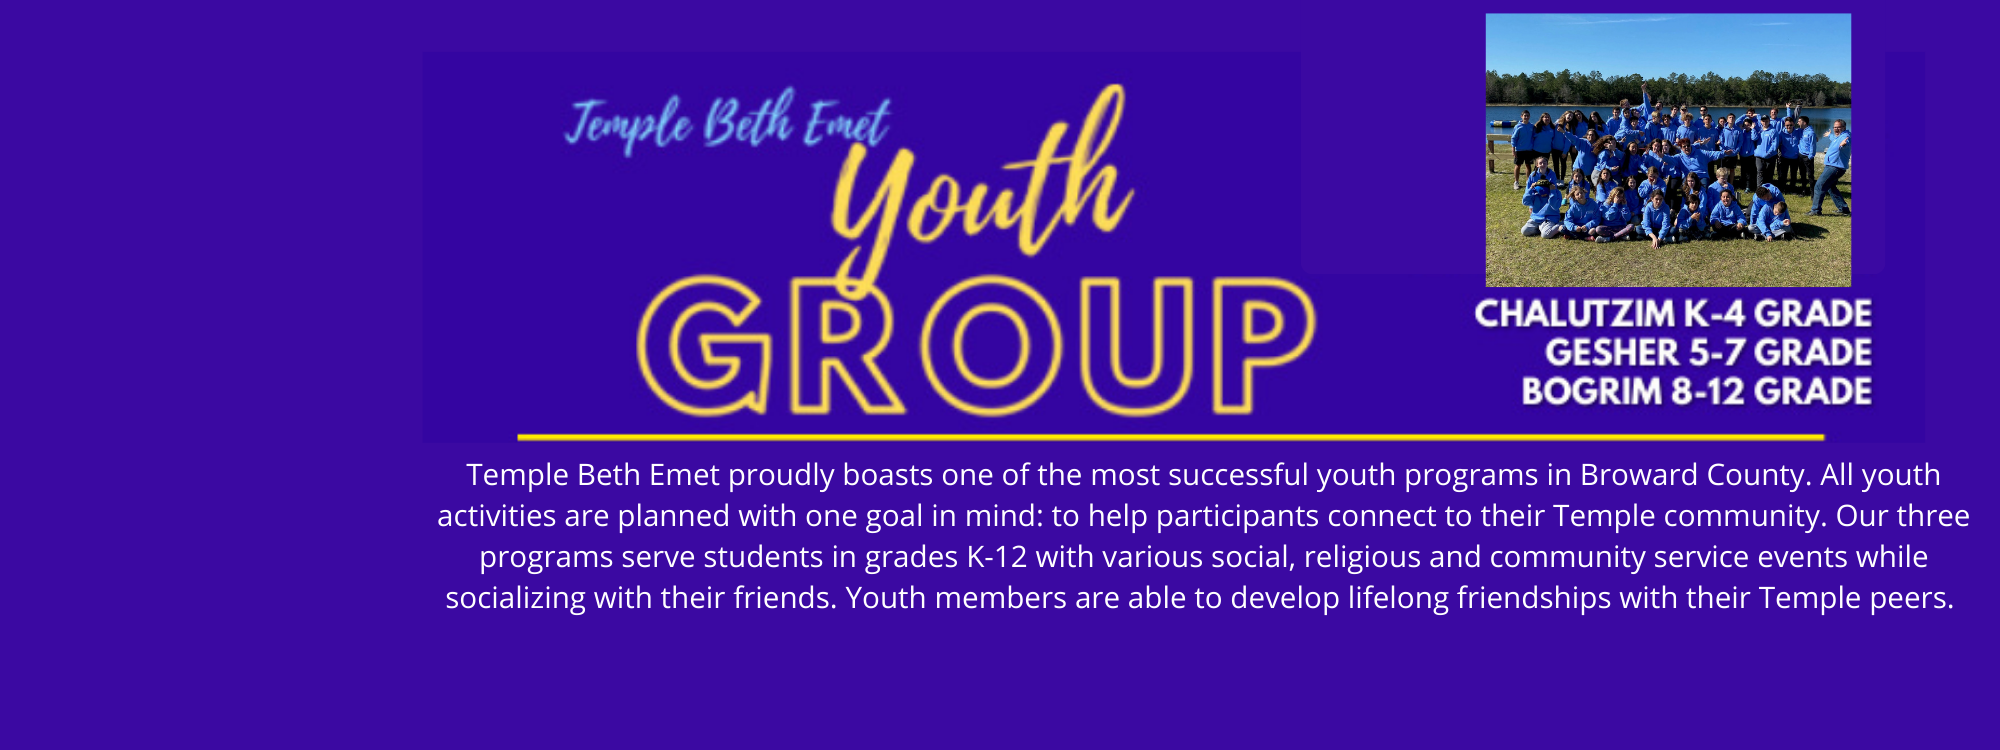 """<a href=""""https://www.templebethemet.org/youthgroup""""                                     target=""""_blank"""">                                                                 <span class=""""slider_title"""">                                     Youth Group 21-22                                </span>                                                                 </a>                                                                                                                                                                                       <span class=""""slider_description"""">Youth Group starts beginning of October. We look forward to inviting your children into our amazing program.</span>                                                                                     <a href=""""https://www.templebethemet.org/youthgroup"""" class=""""slider_link""""                             target=""""_blank"""">                             Learn More                            </a>"""